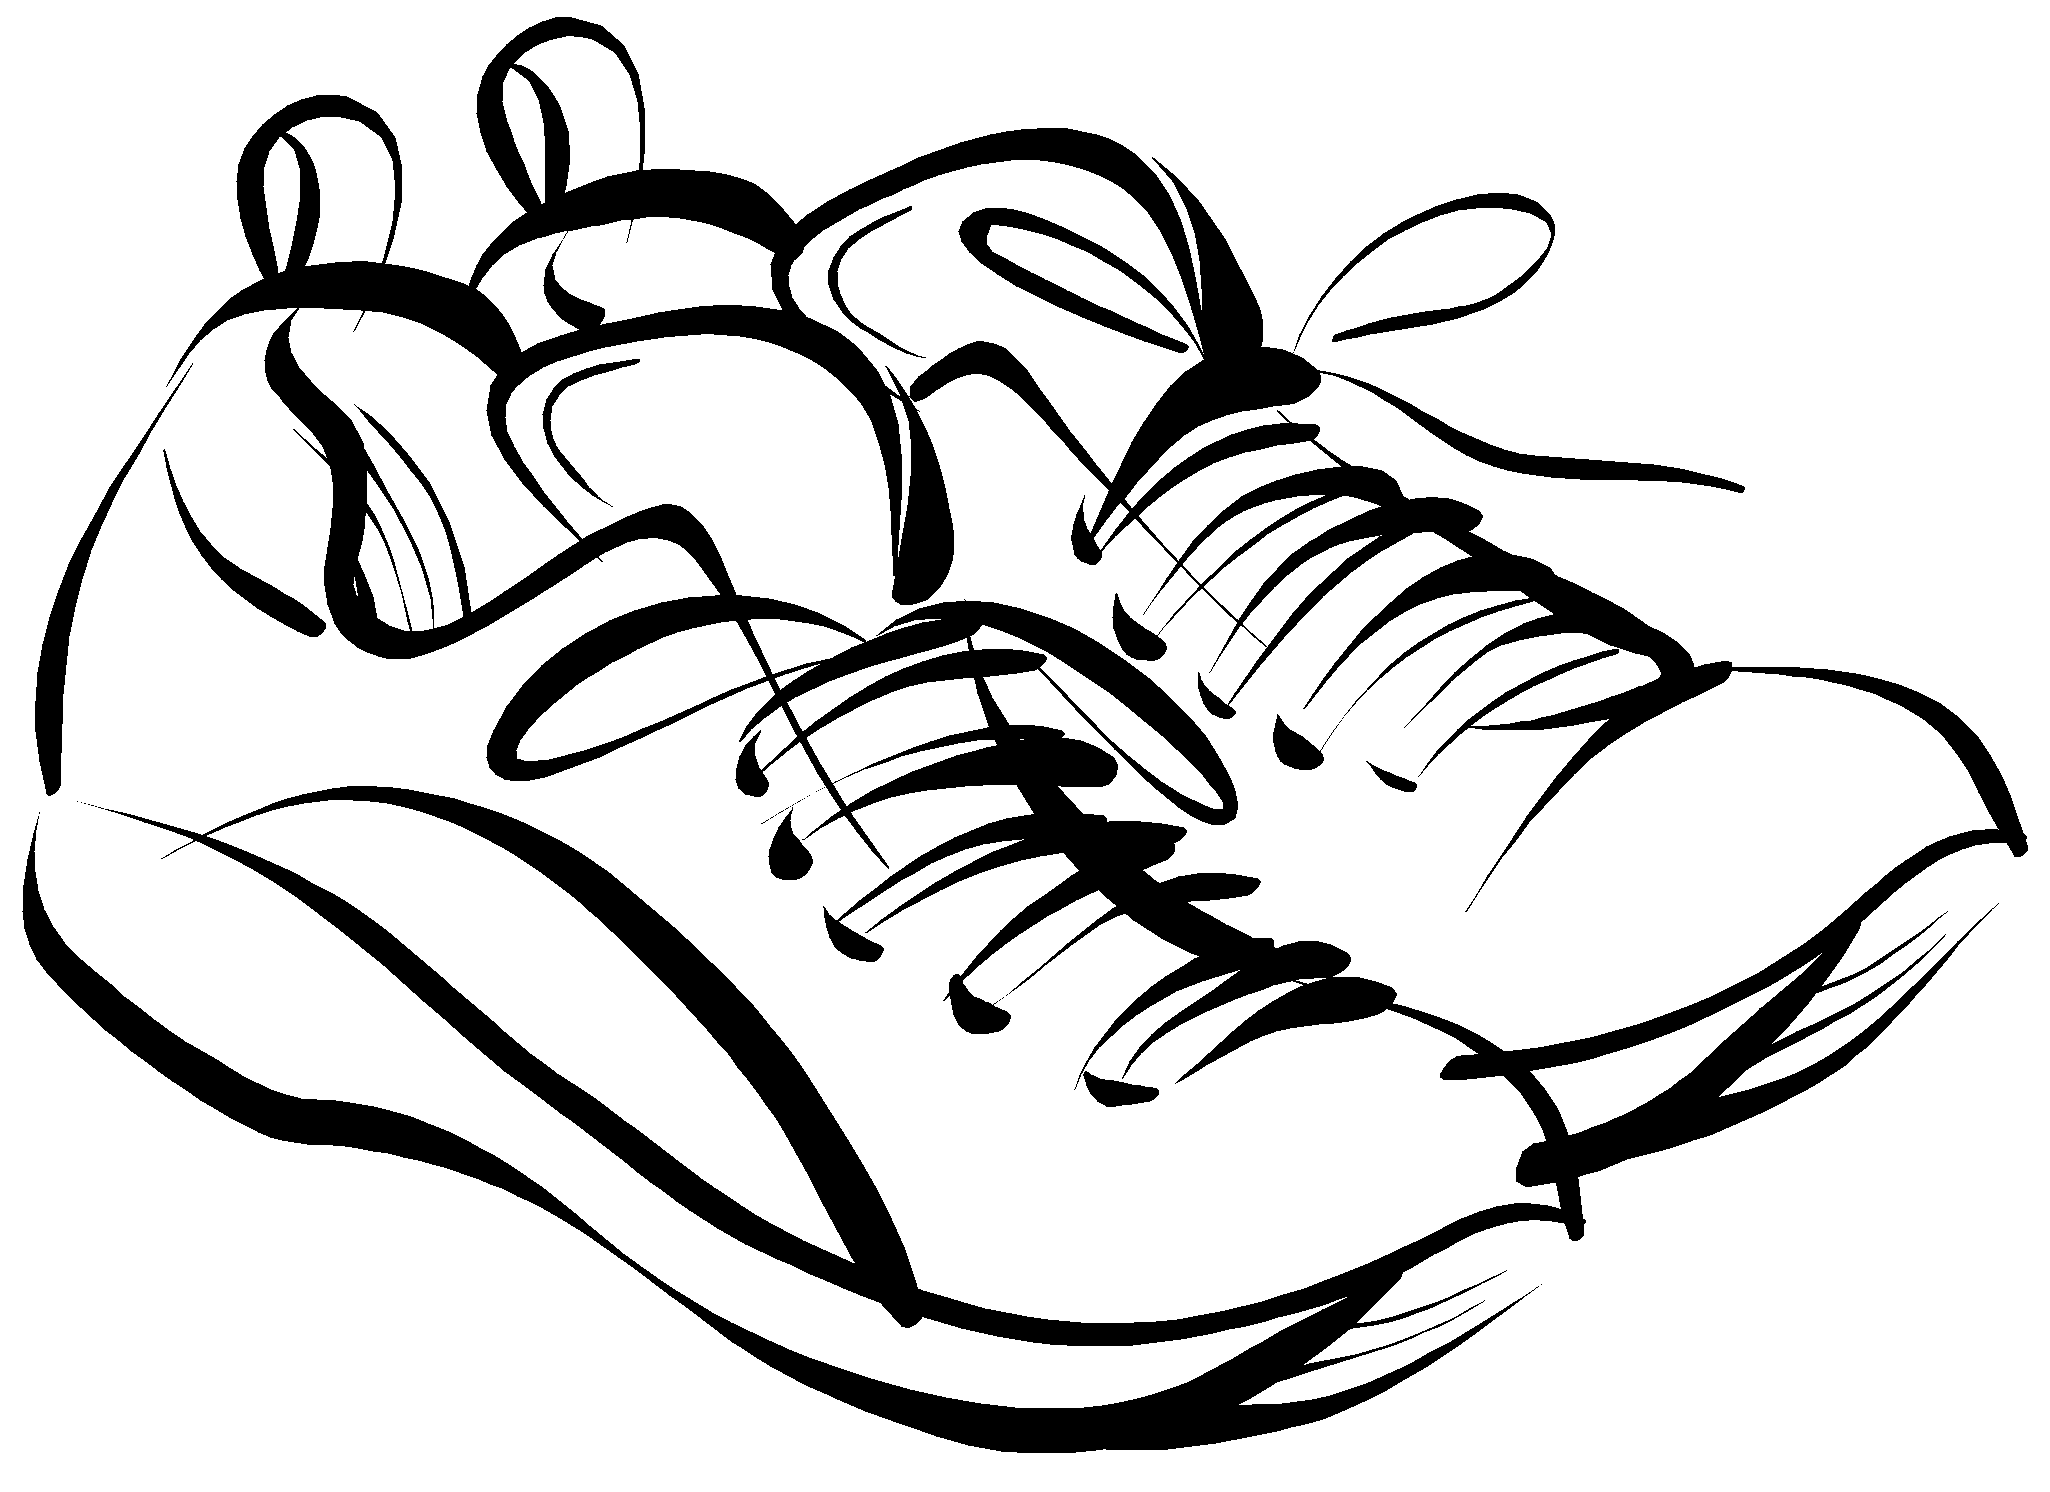 graphic black and white download drawing jordans printable #94413294